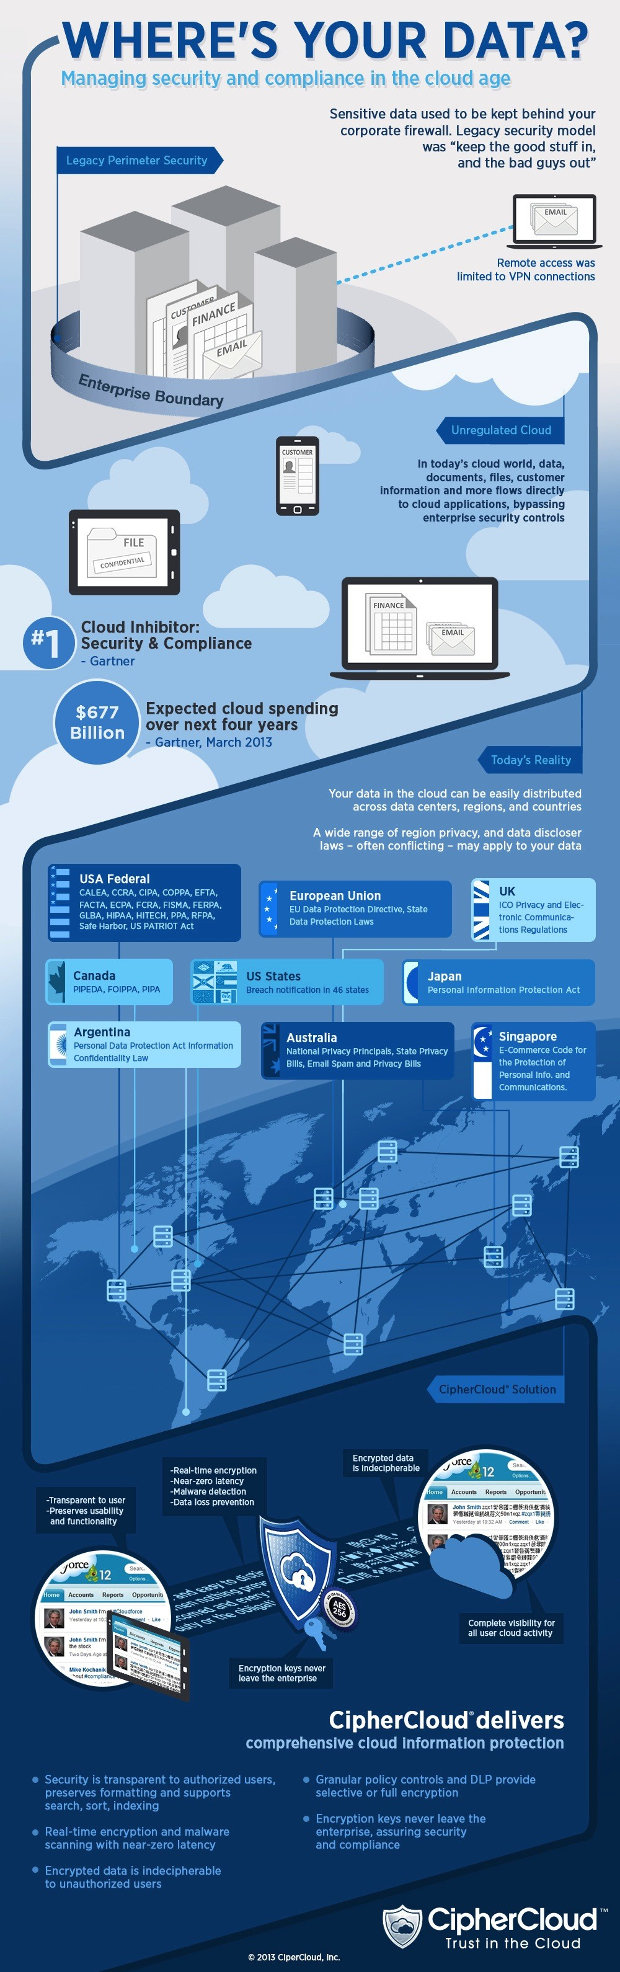 Where is your data? - infographic by CipherCloud